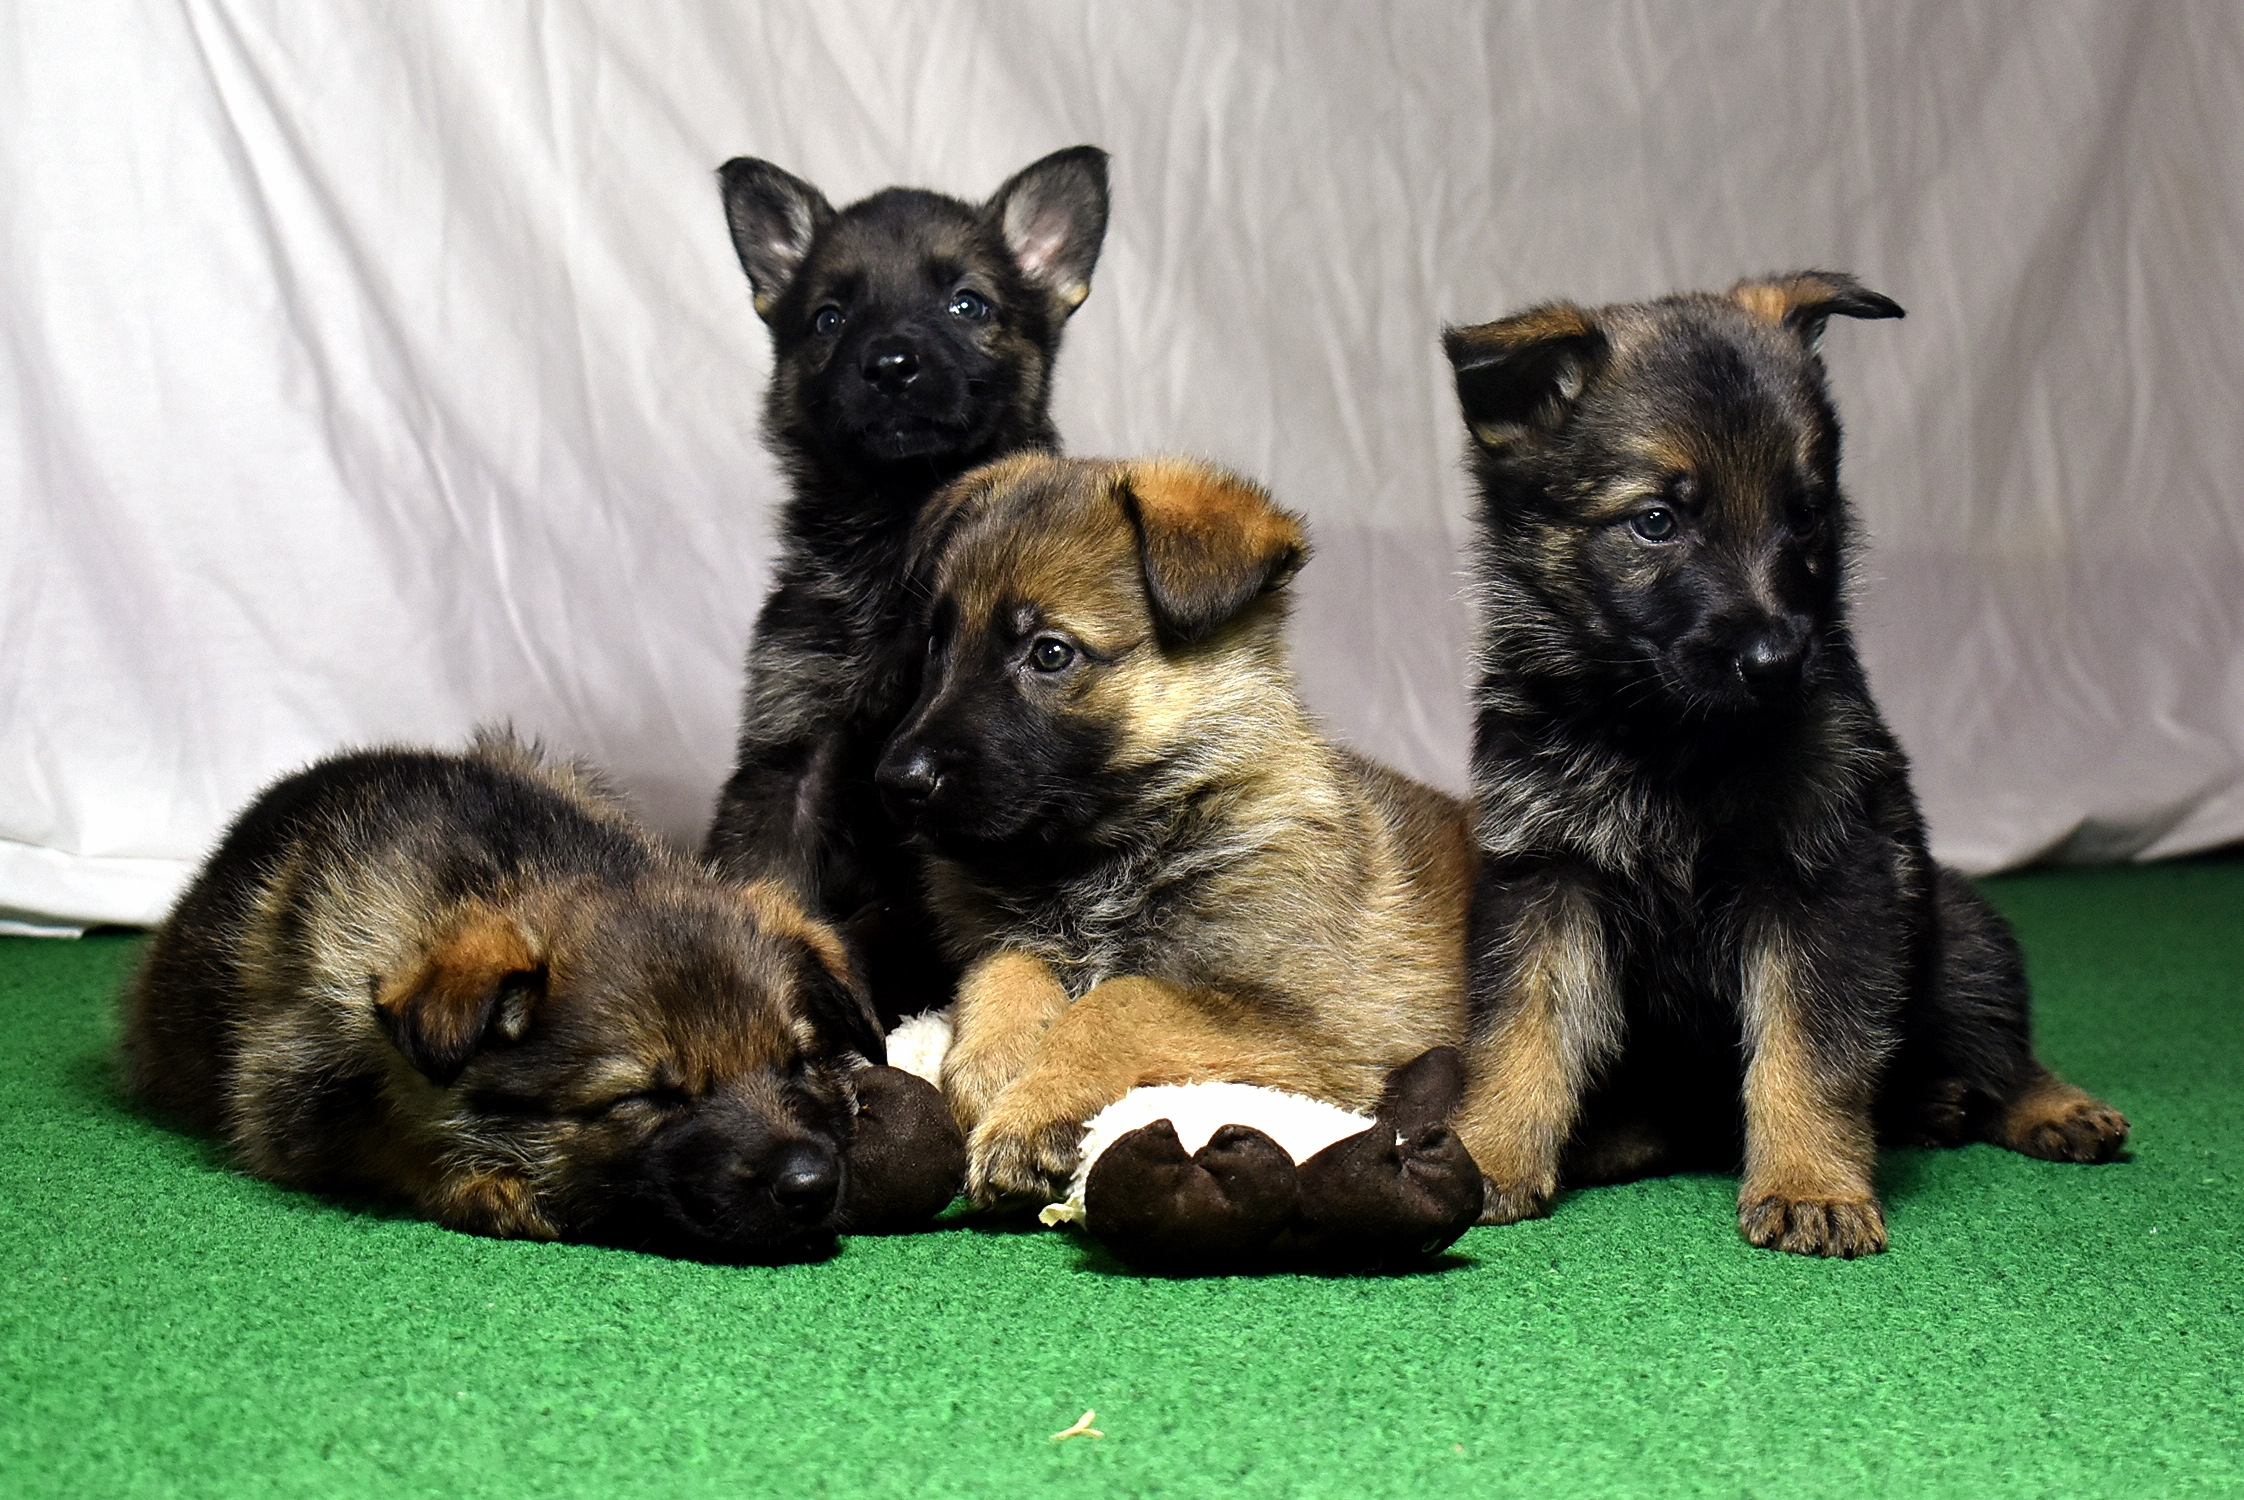 39-day old German Shepherd puppies